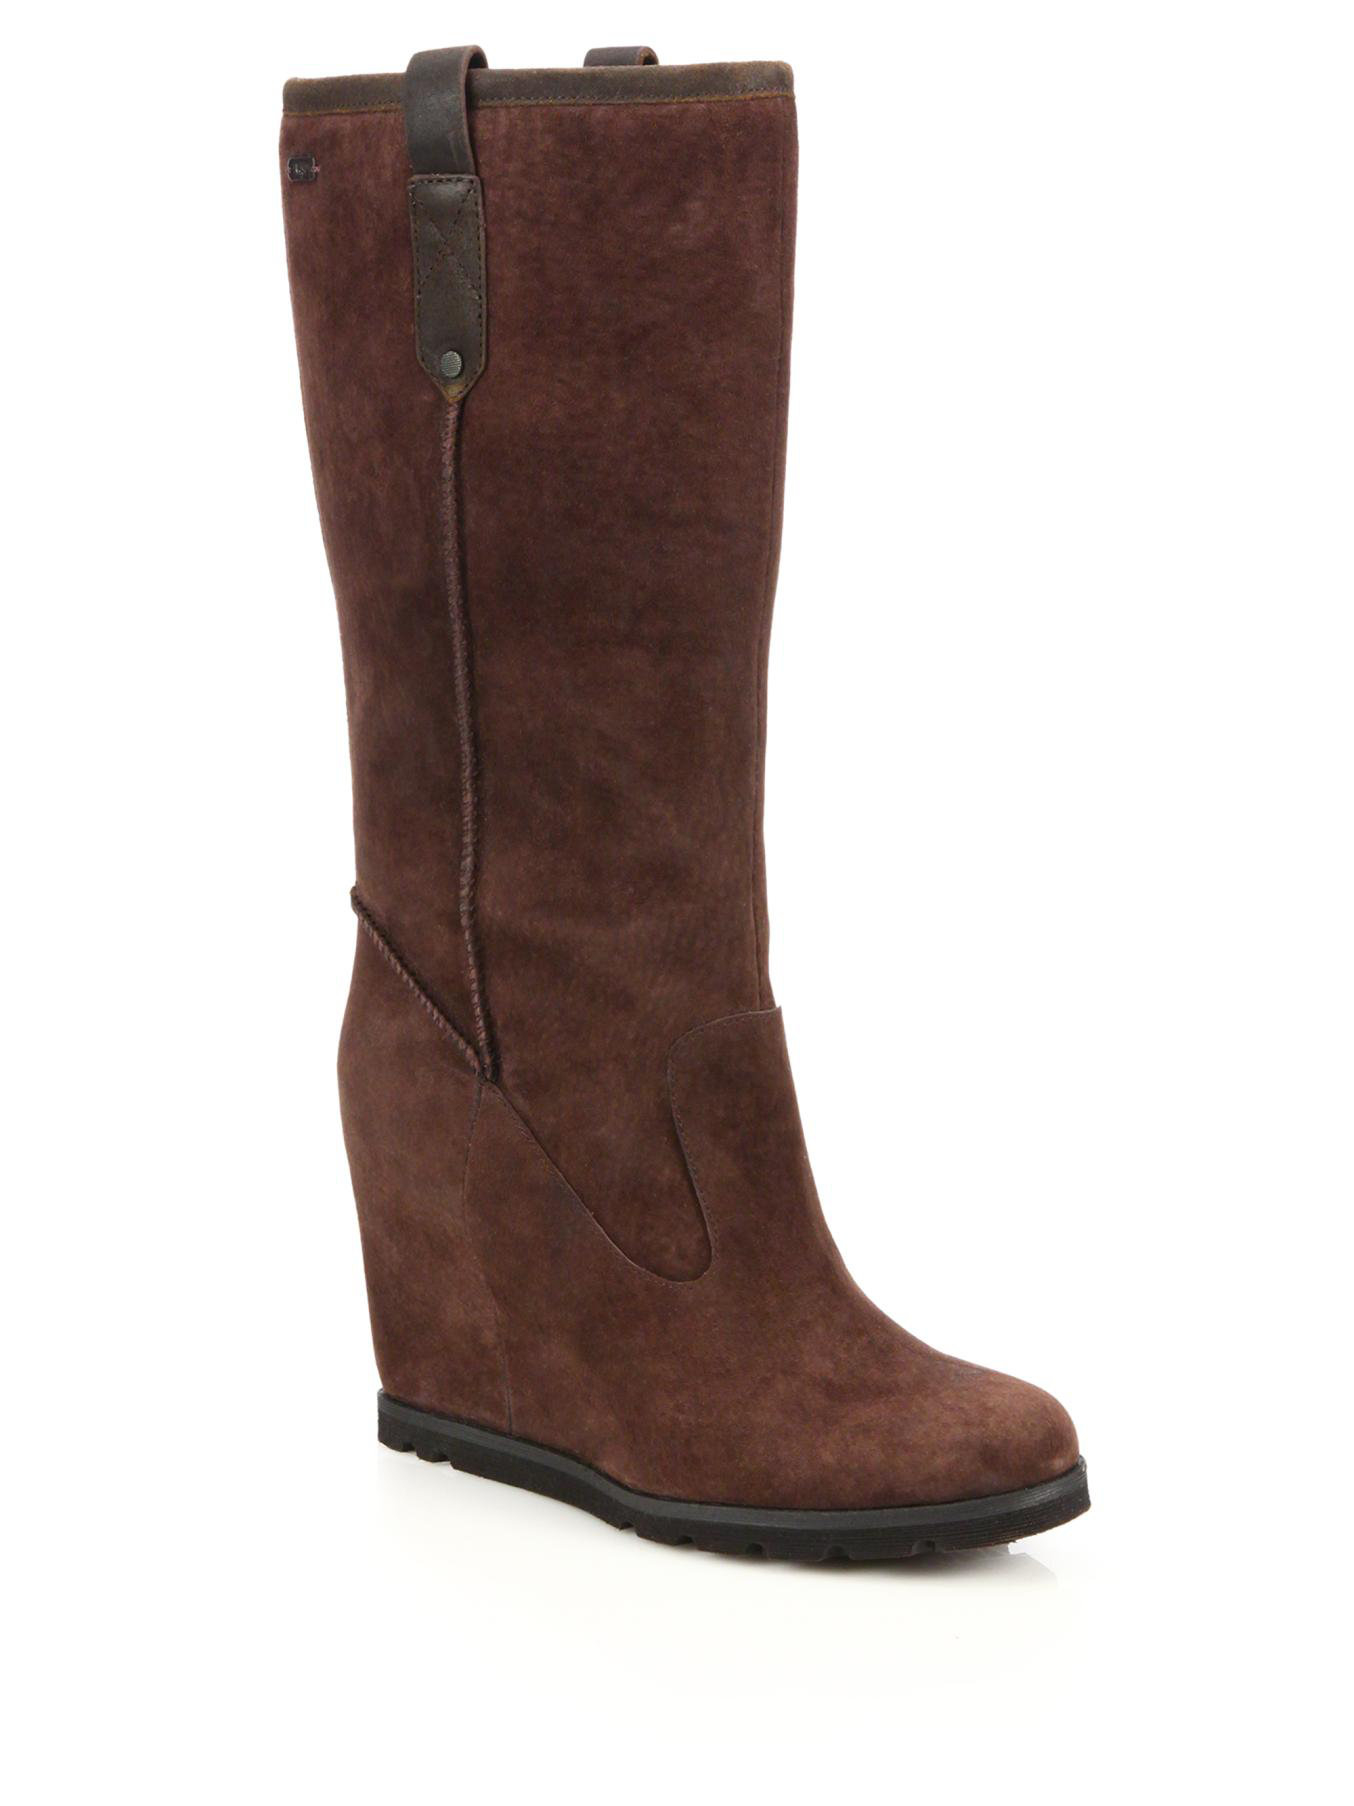 b8068e603dd9 ... official store lyst ugg soleil suede shearling wedge boots in brown  06553 39a66 ...